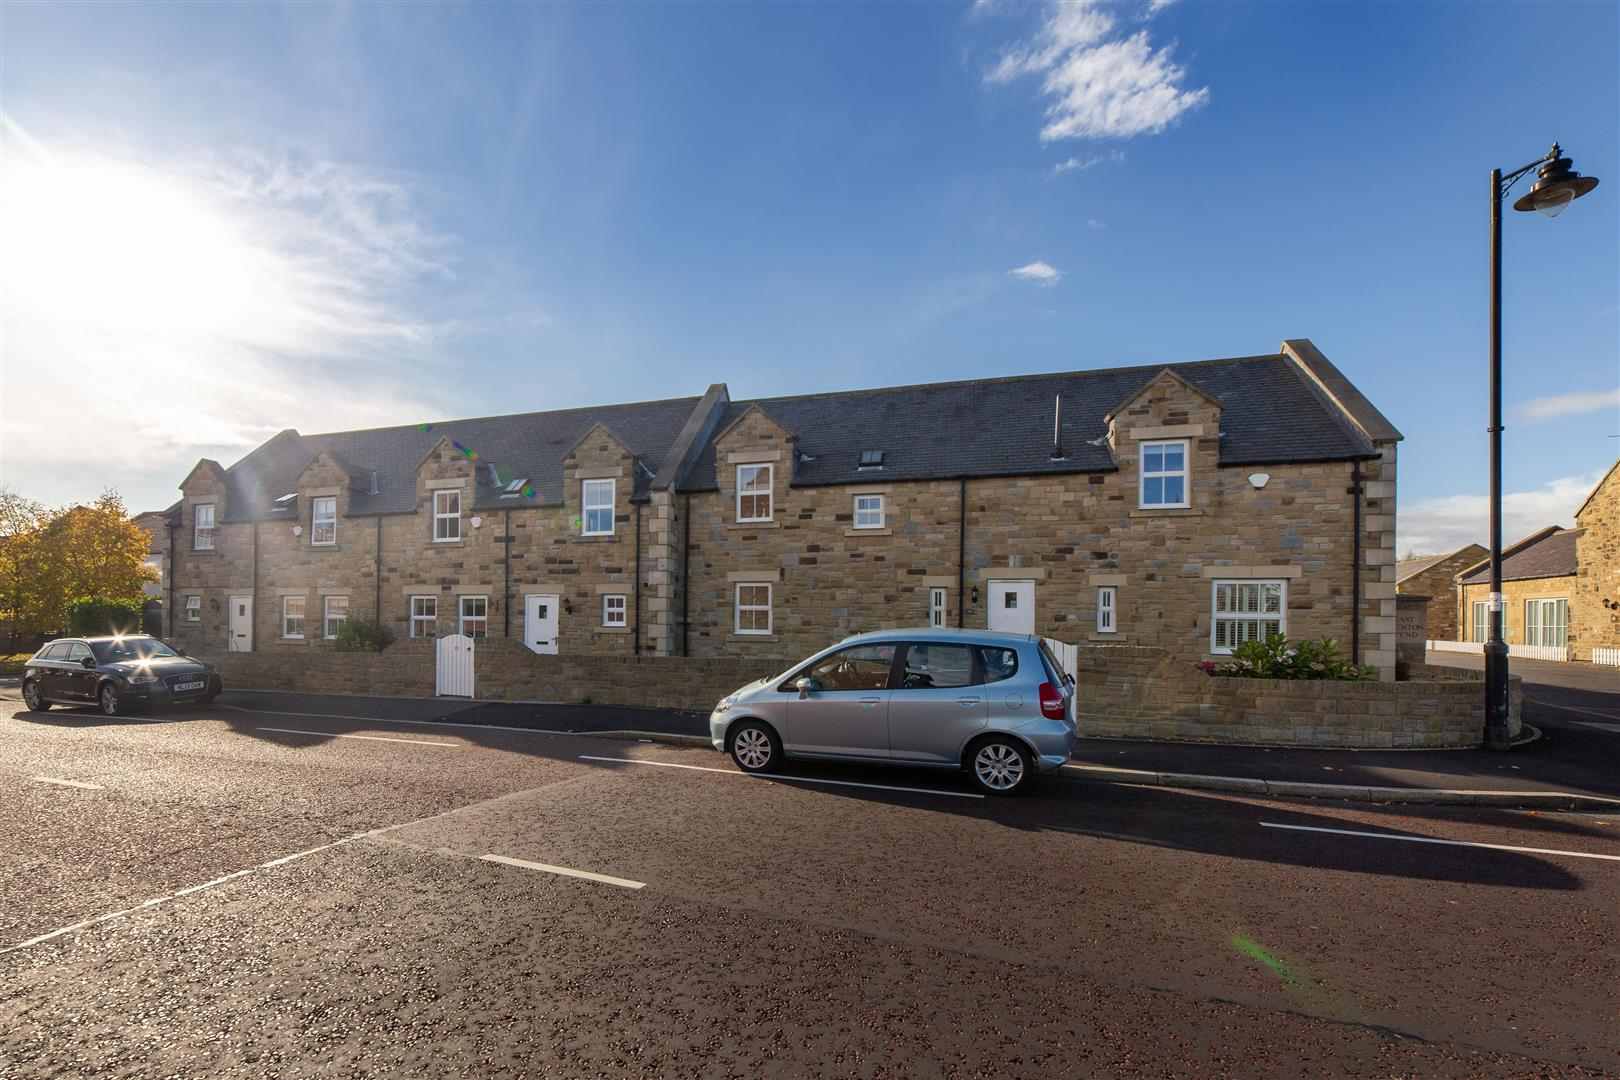 4 bed terraced house for sale in Newcastle Upon Tyne, NE13 7BR 0